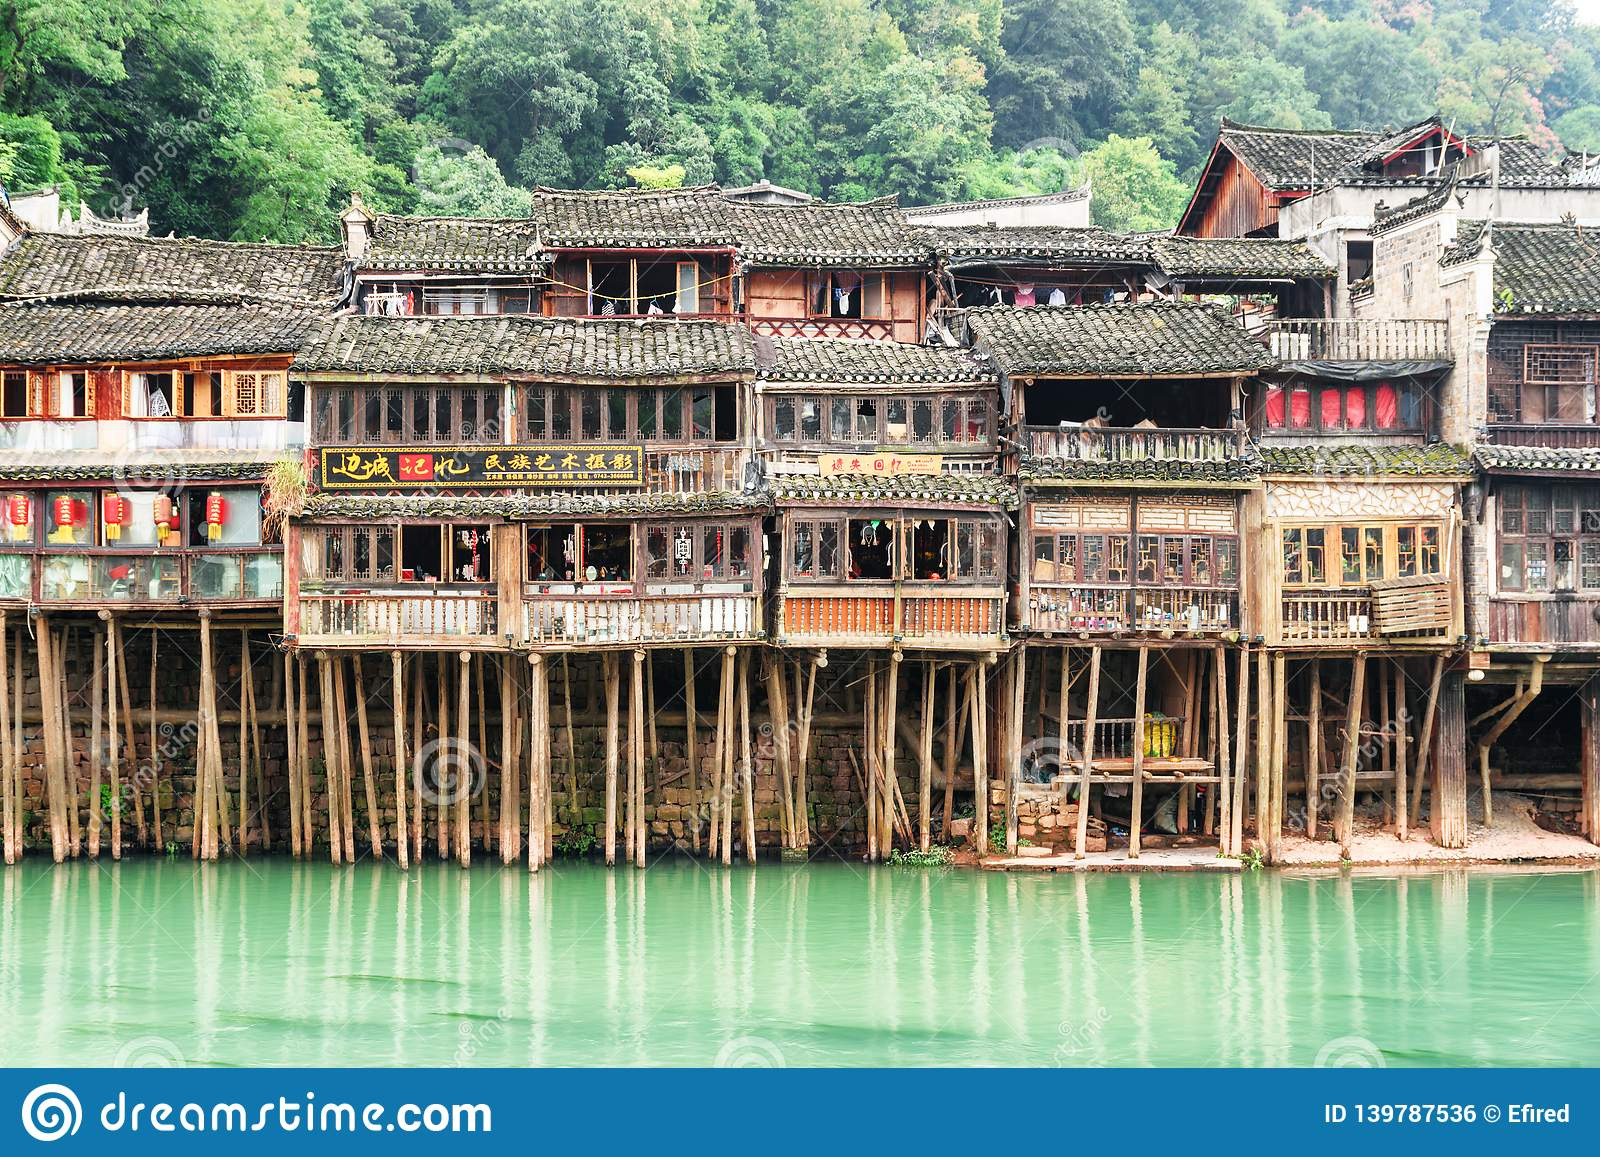 old authentic chinese wooden riverside houses on stilts